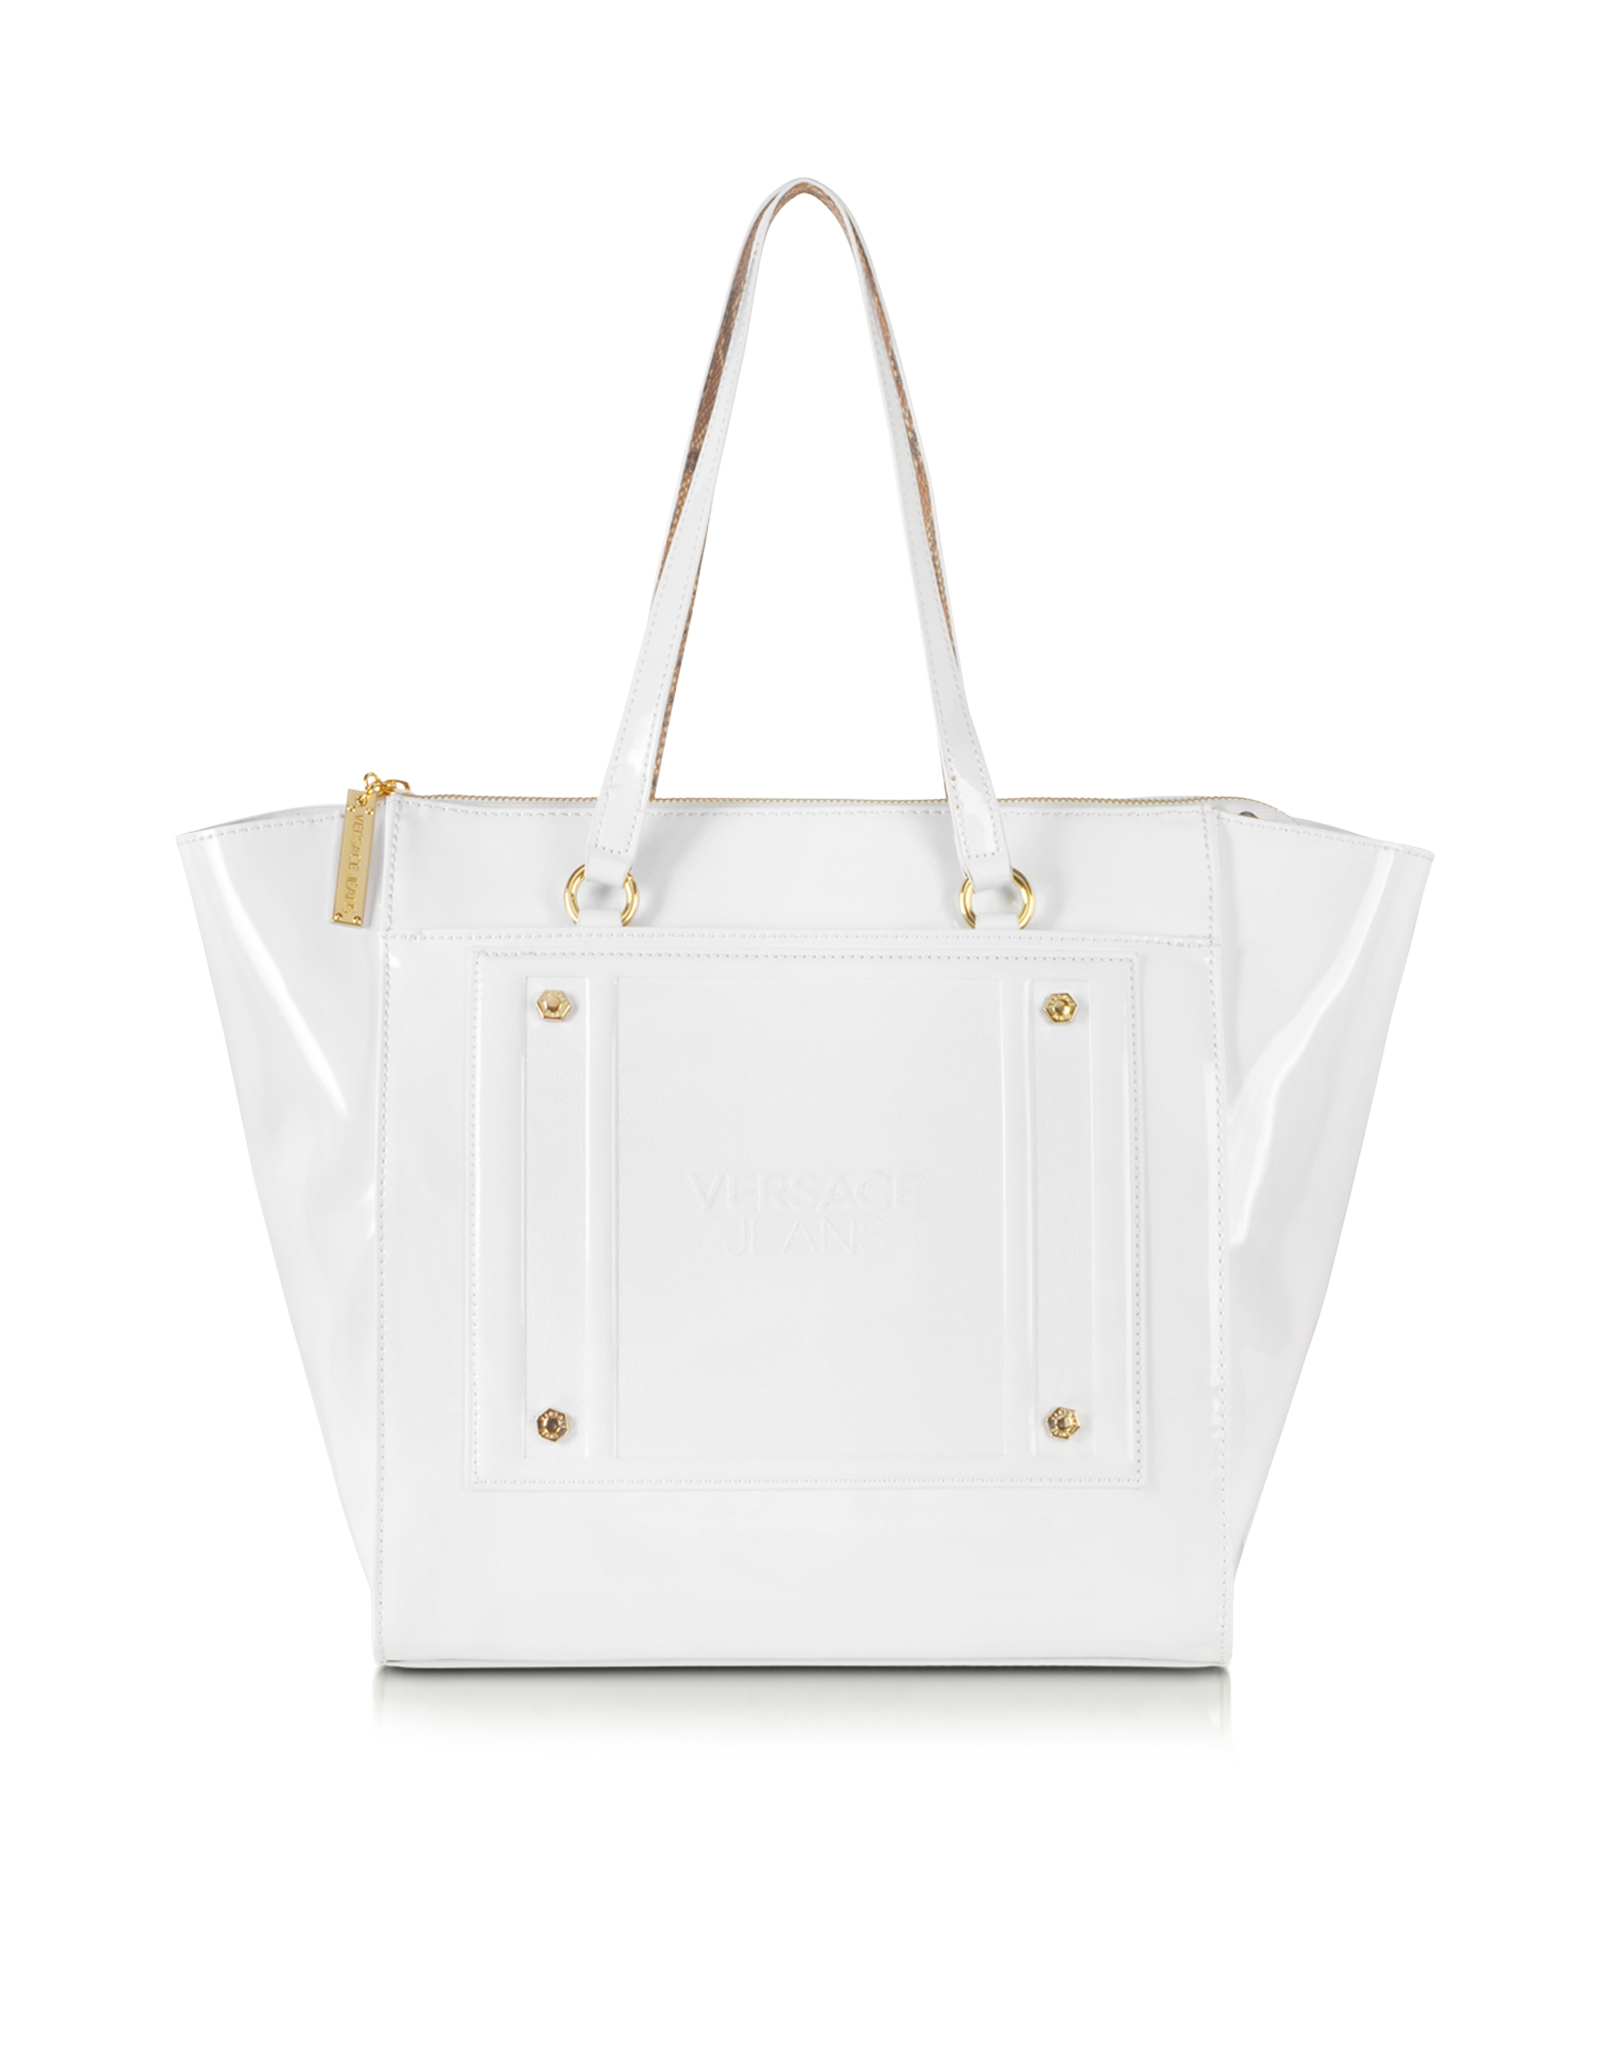 Versace Jeans White Patent Eco Leather Tote